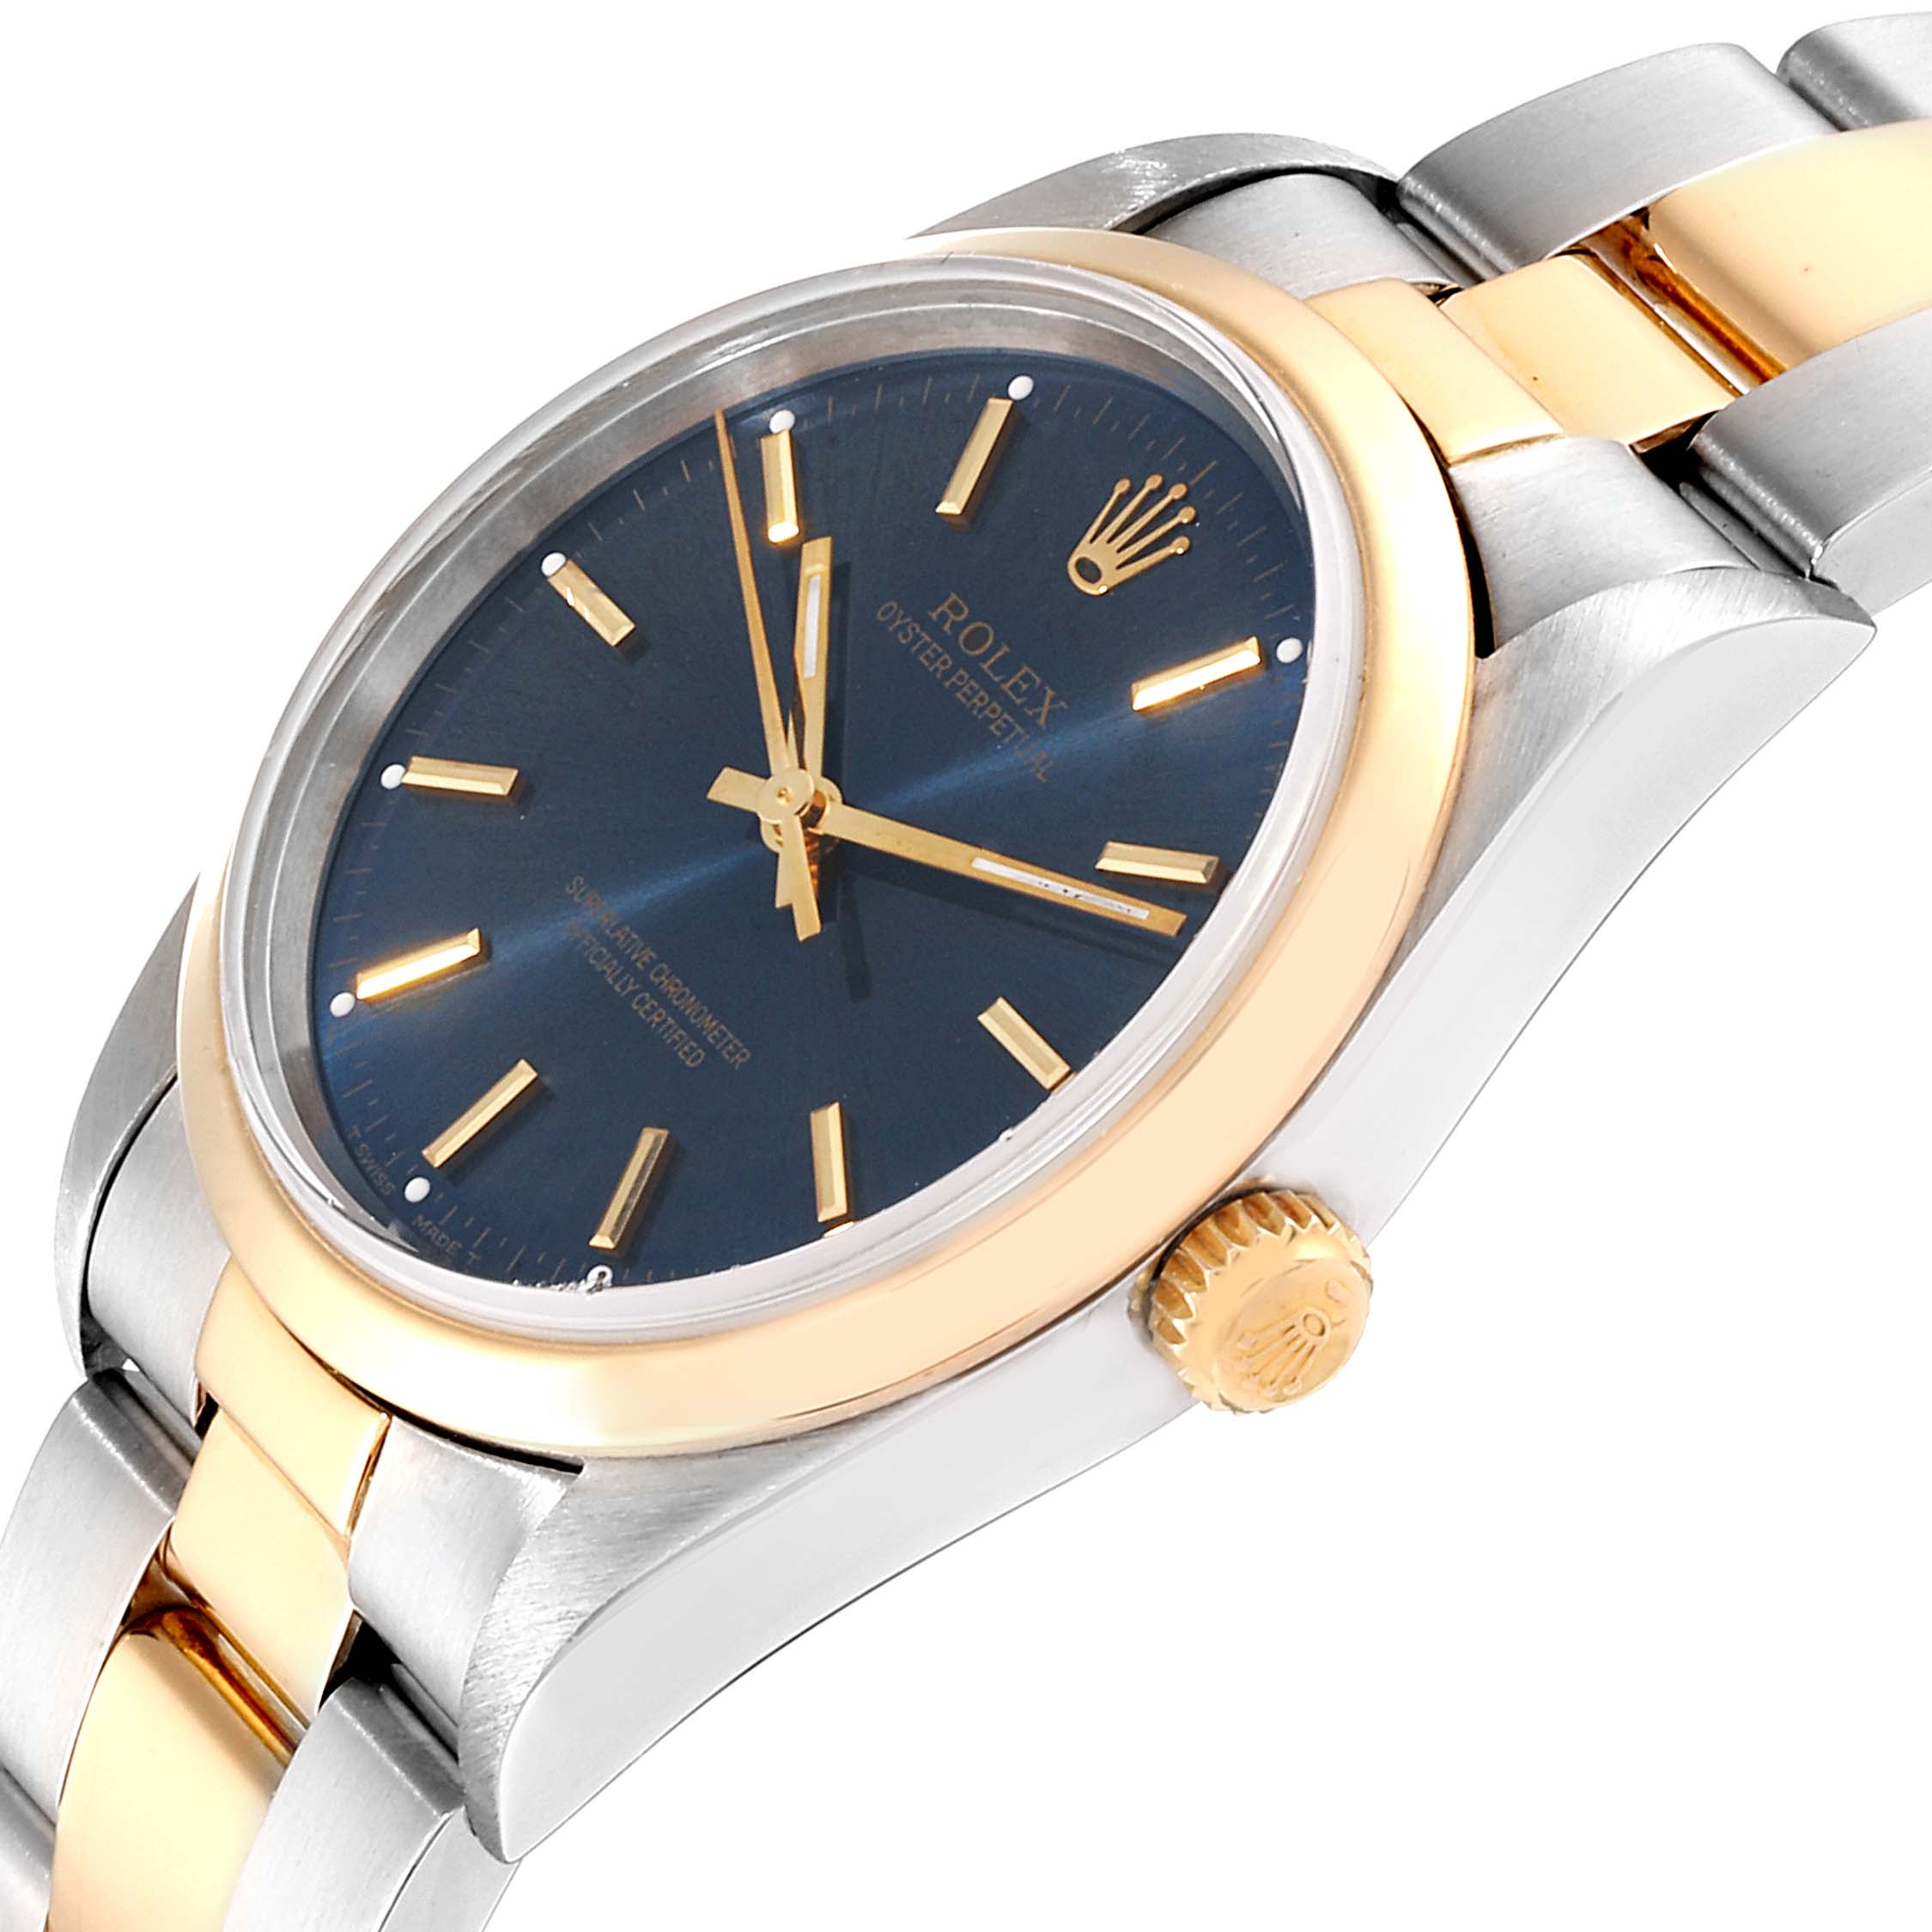 Rolex Oyster Perpetual Steel Yellow Gold Mens Watch 14203 Box Papers SwissWatchExpo